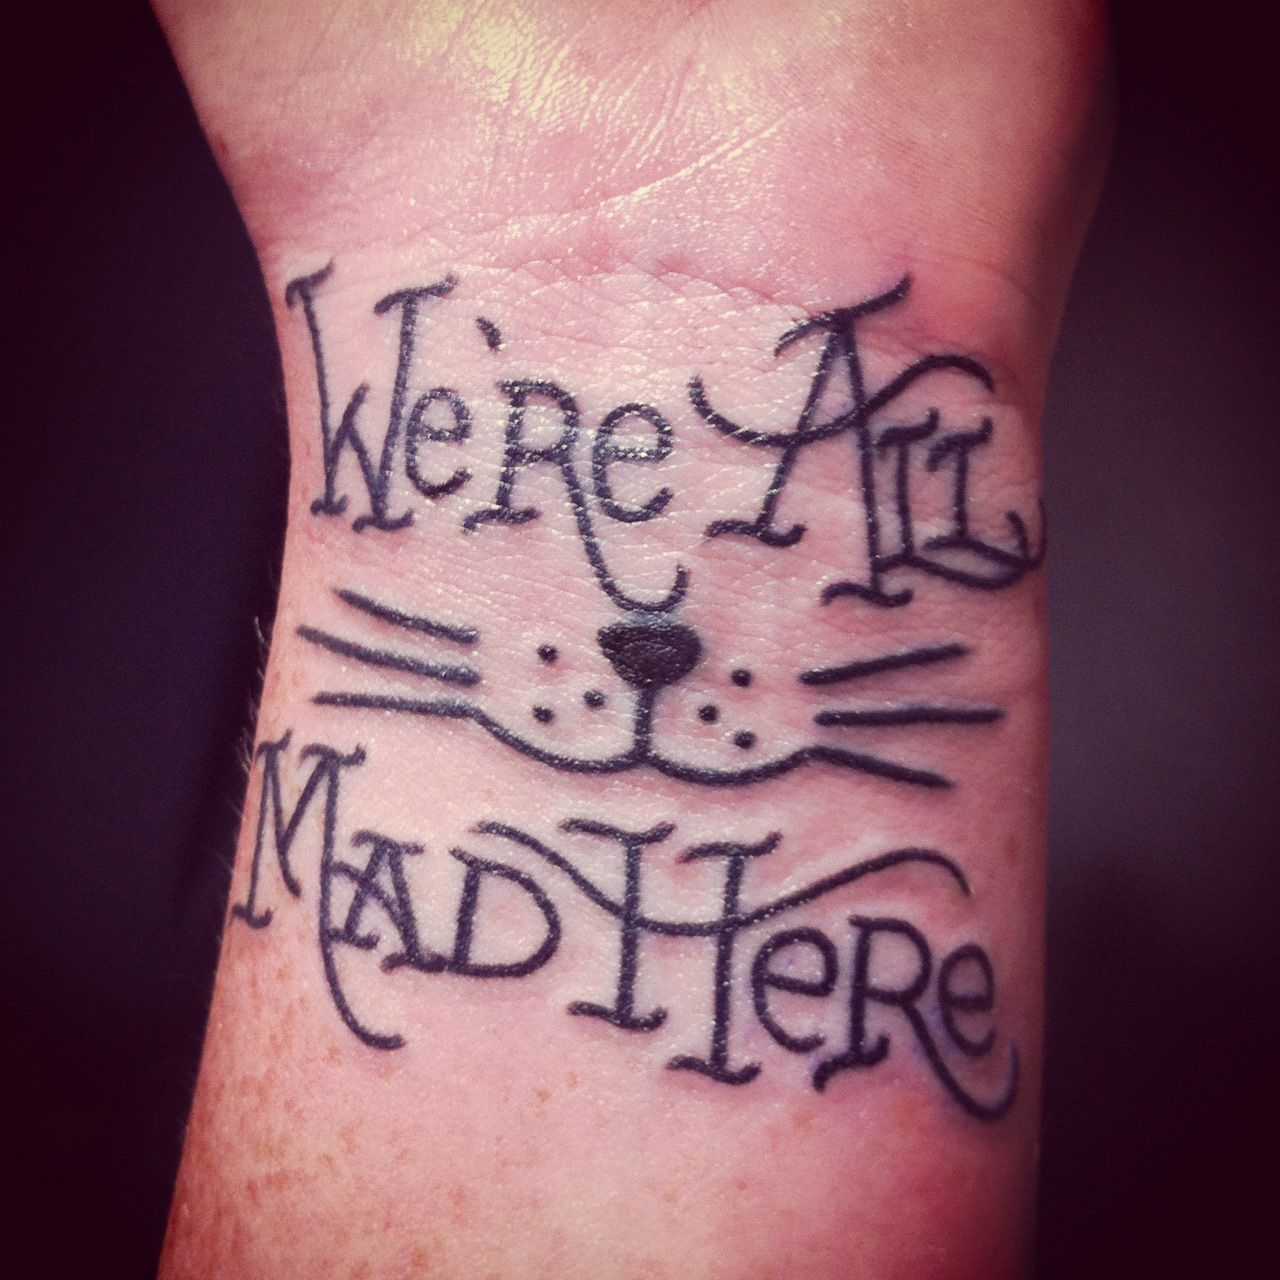 We\'re all mad here | Jesus loves my tattoo ideas | Pinterest | Mad ...